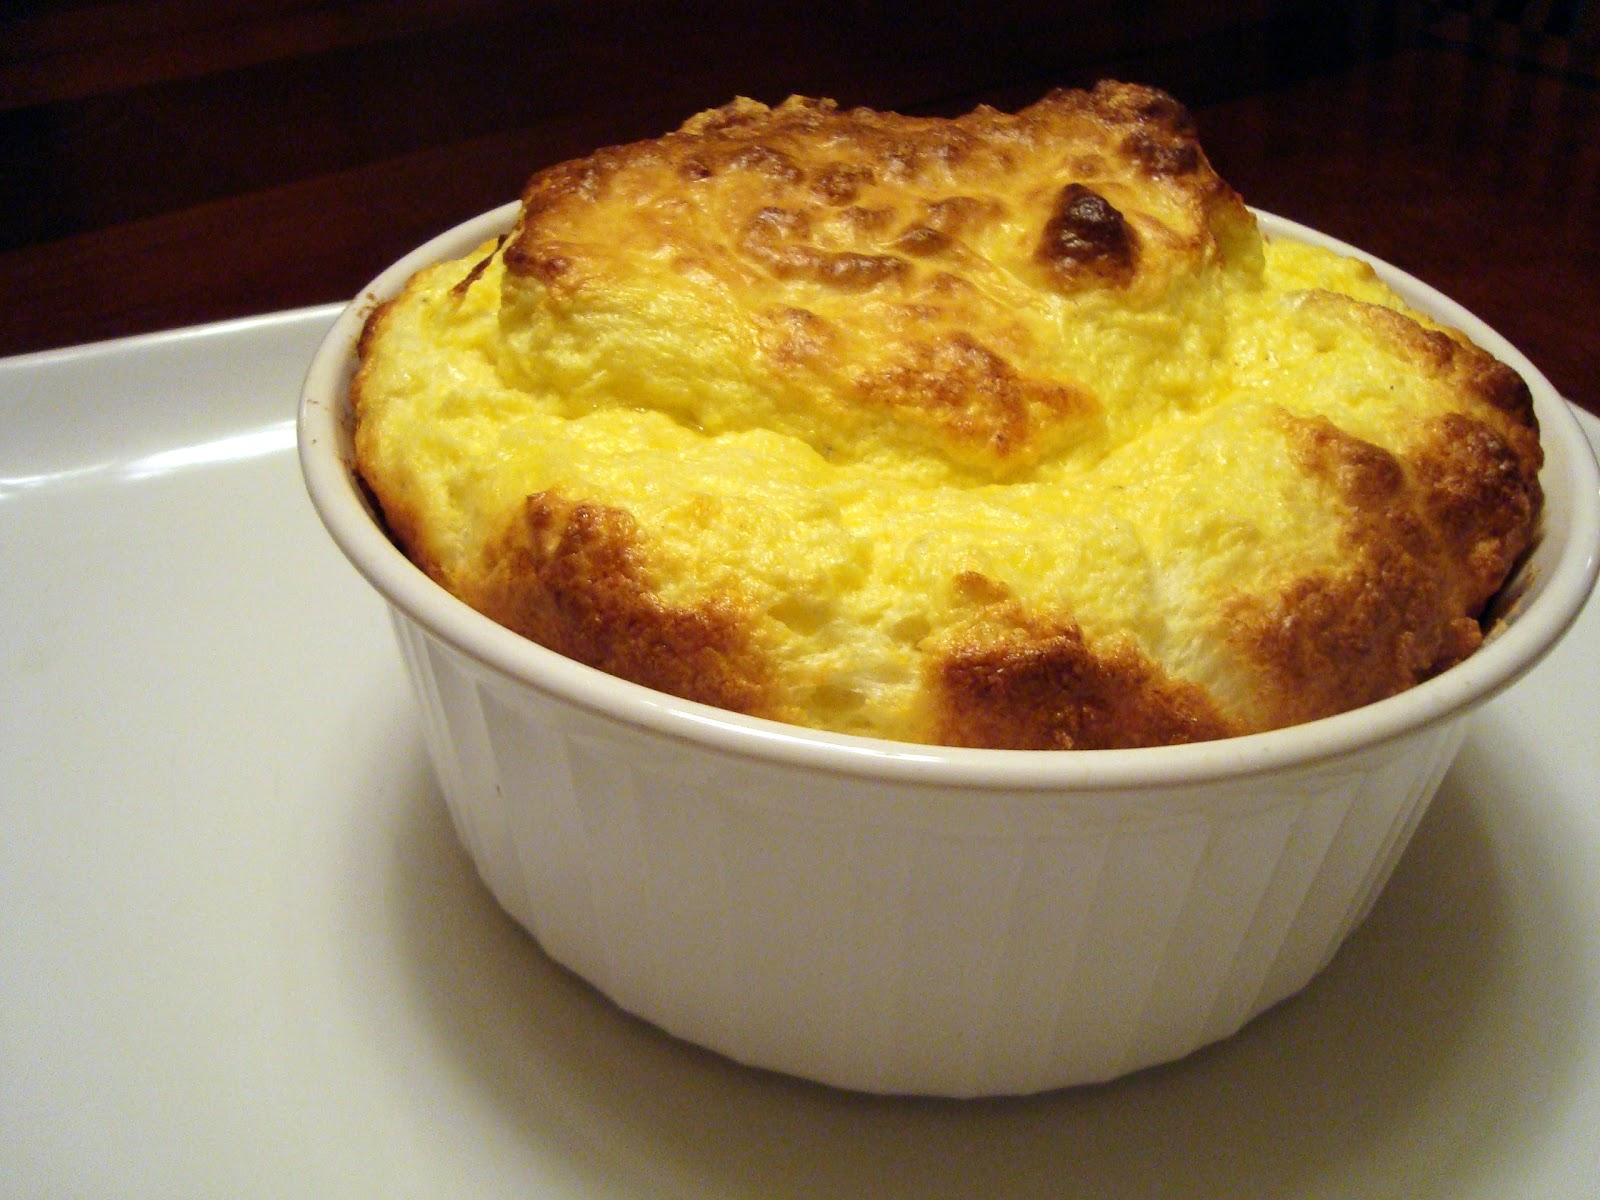 ... souffle nutella souffle parmesan cheese souffle recipe from the martha